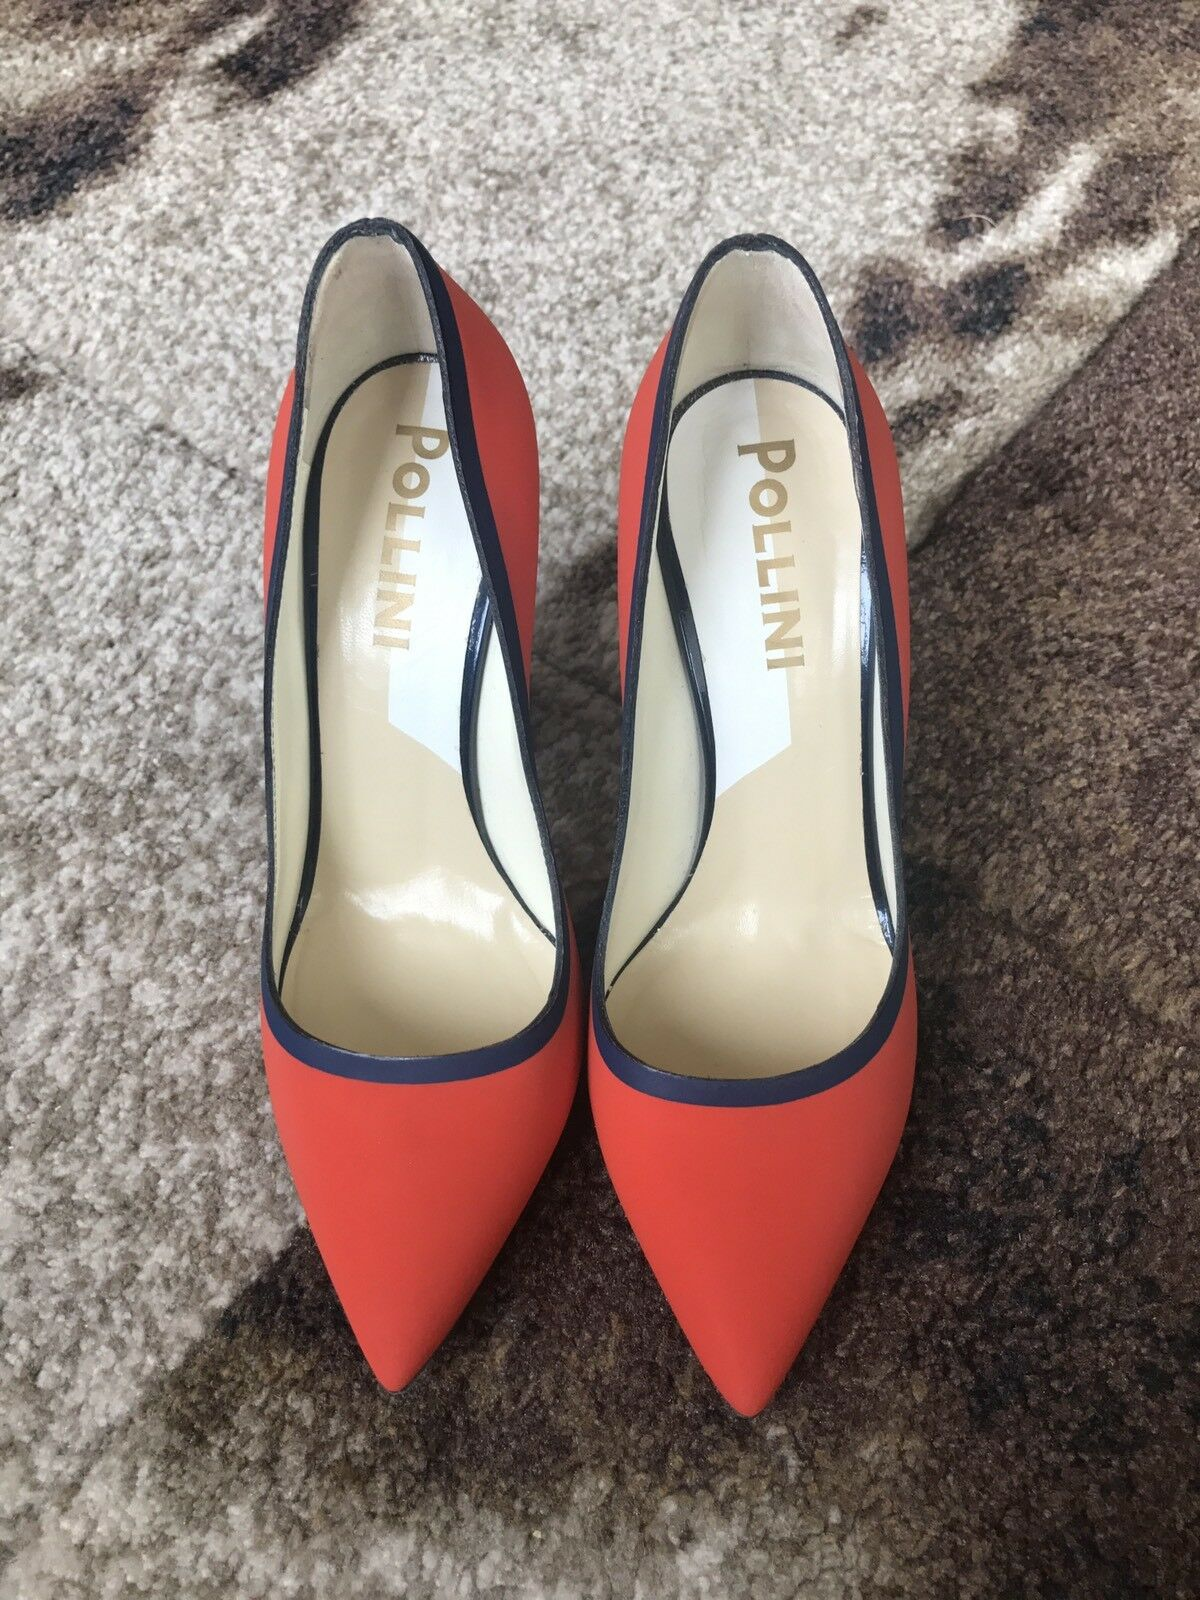 Pollini Pumps - Sz 36 - Worn Once